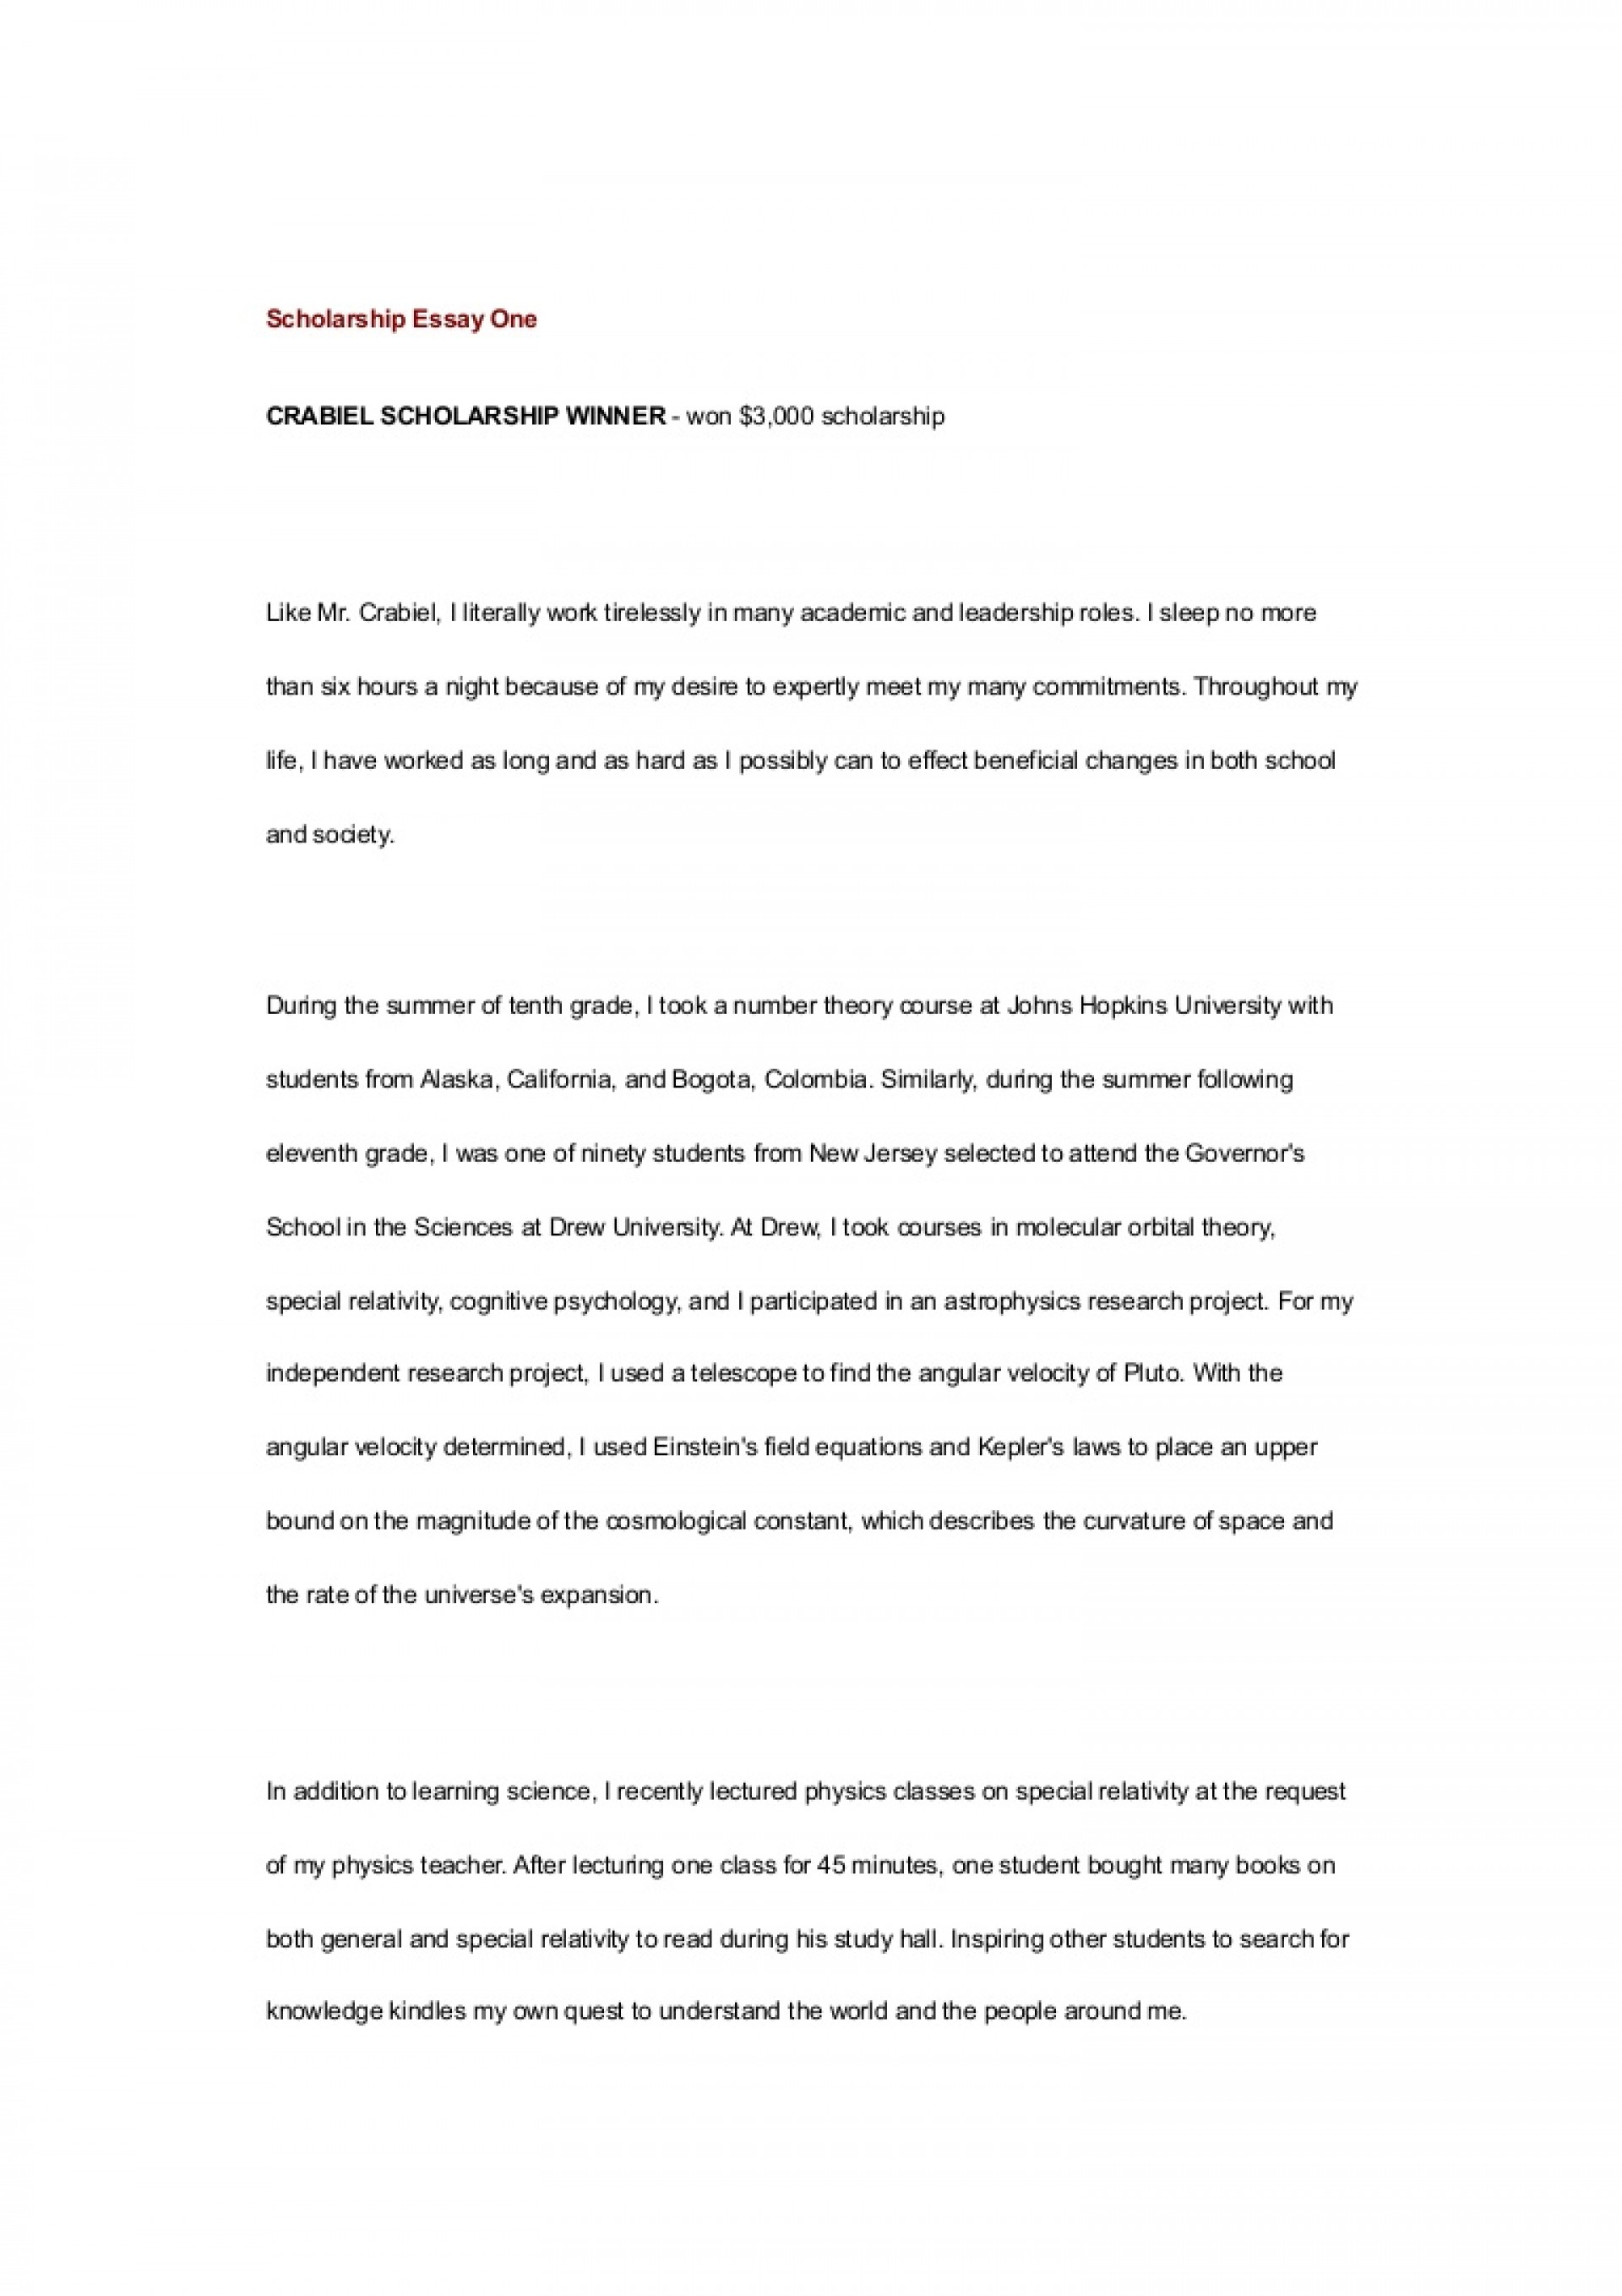 002 Scholarshipessayone Phpapp01 Thumbnail Essay Example Phenomenal Scholarship Prompts Ideas College Format 1920